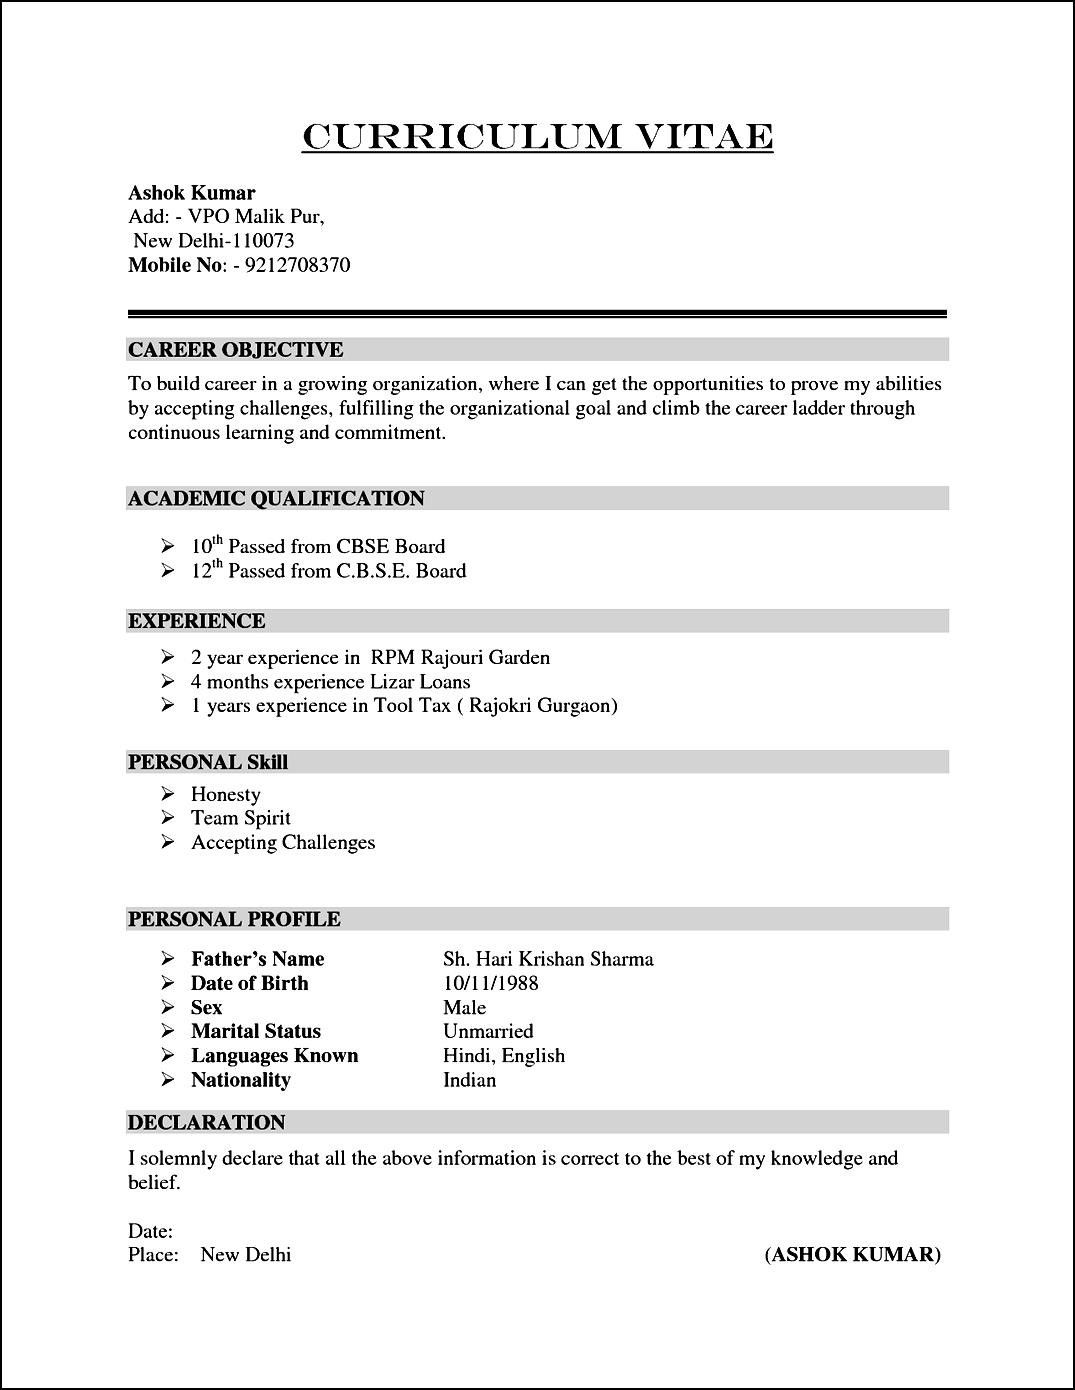 Samples Of Curriculum Vitae Samplecurriculumvitaeresumeforcareerobjectivewithacademic